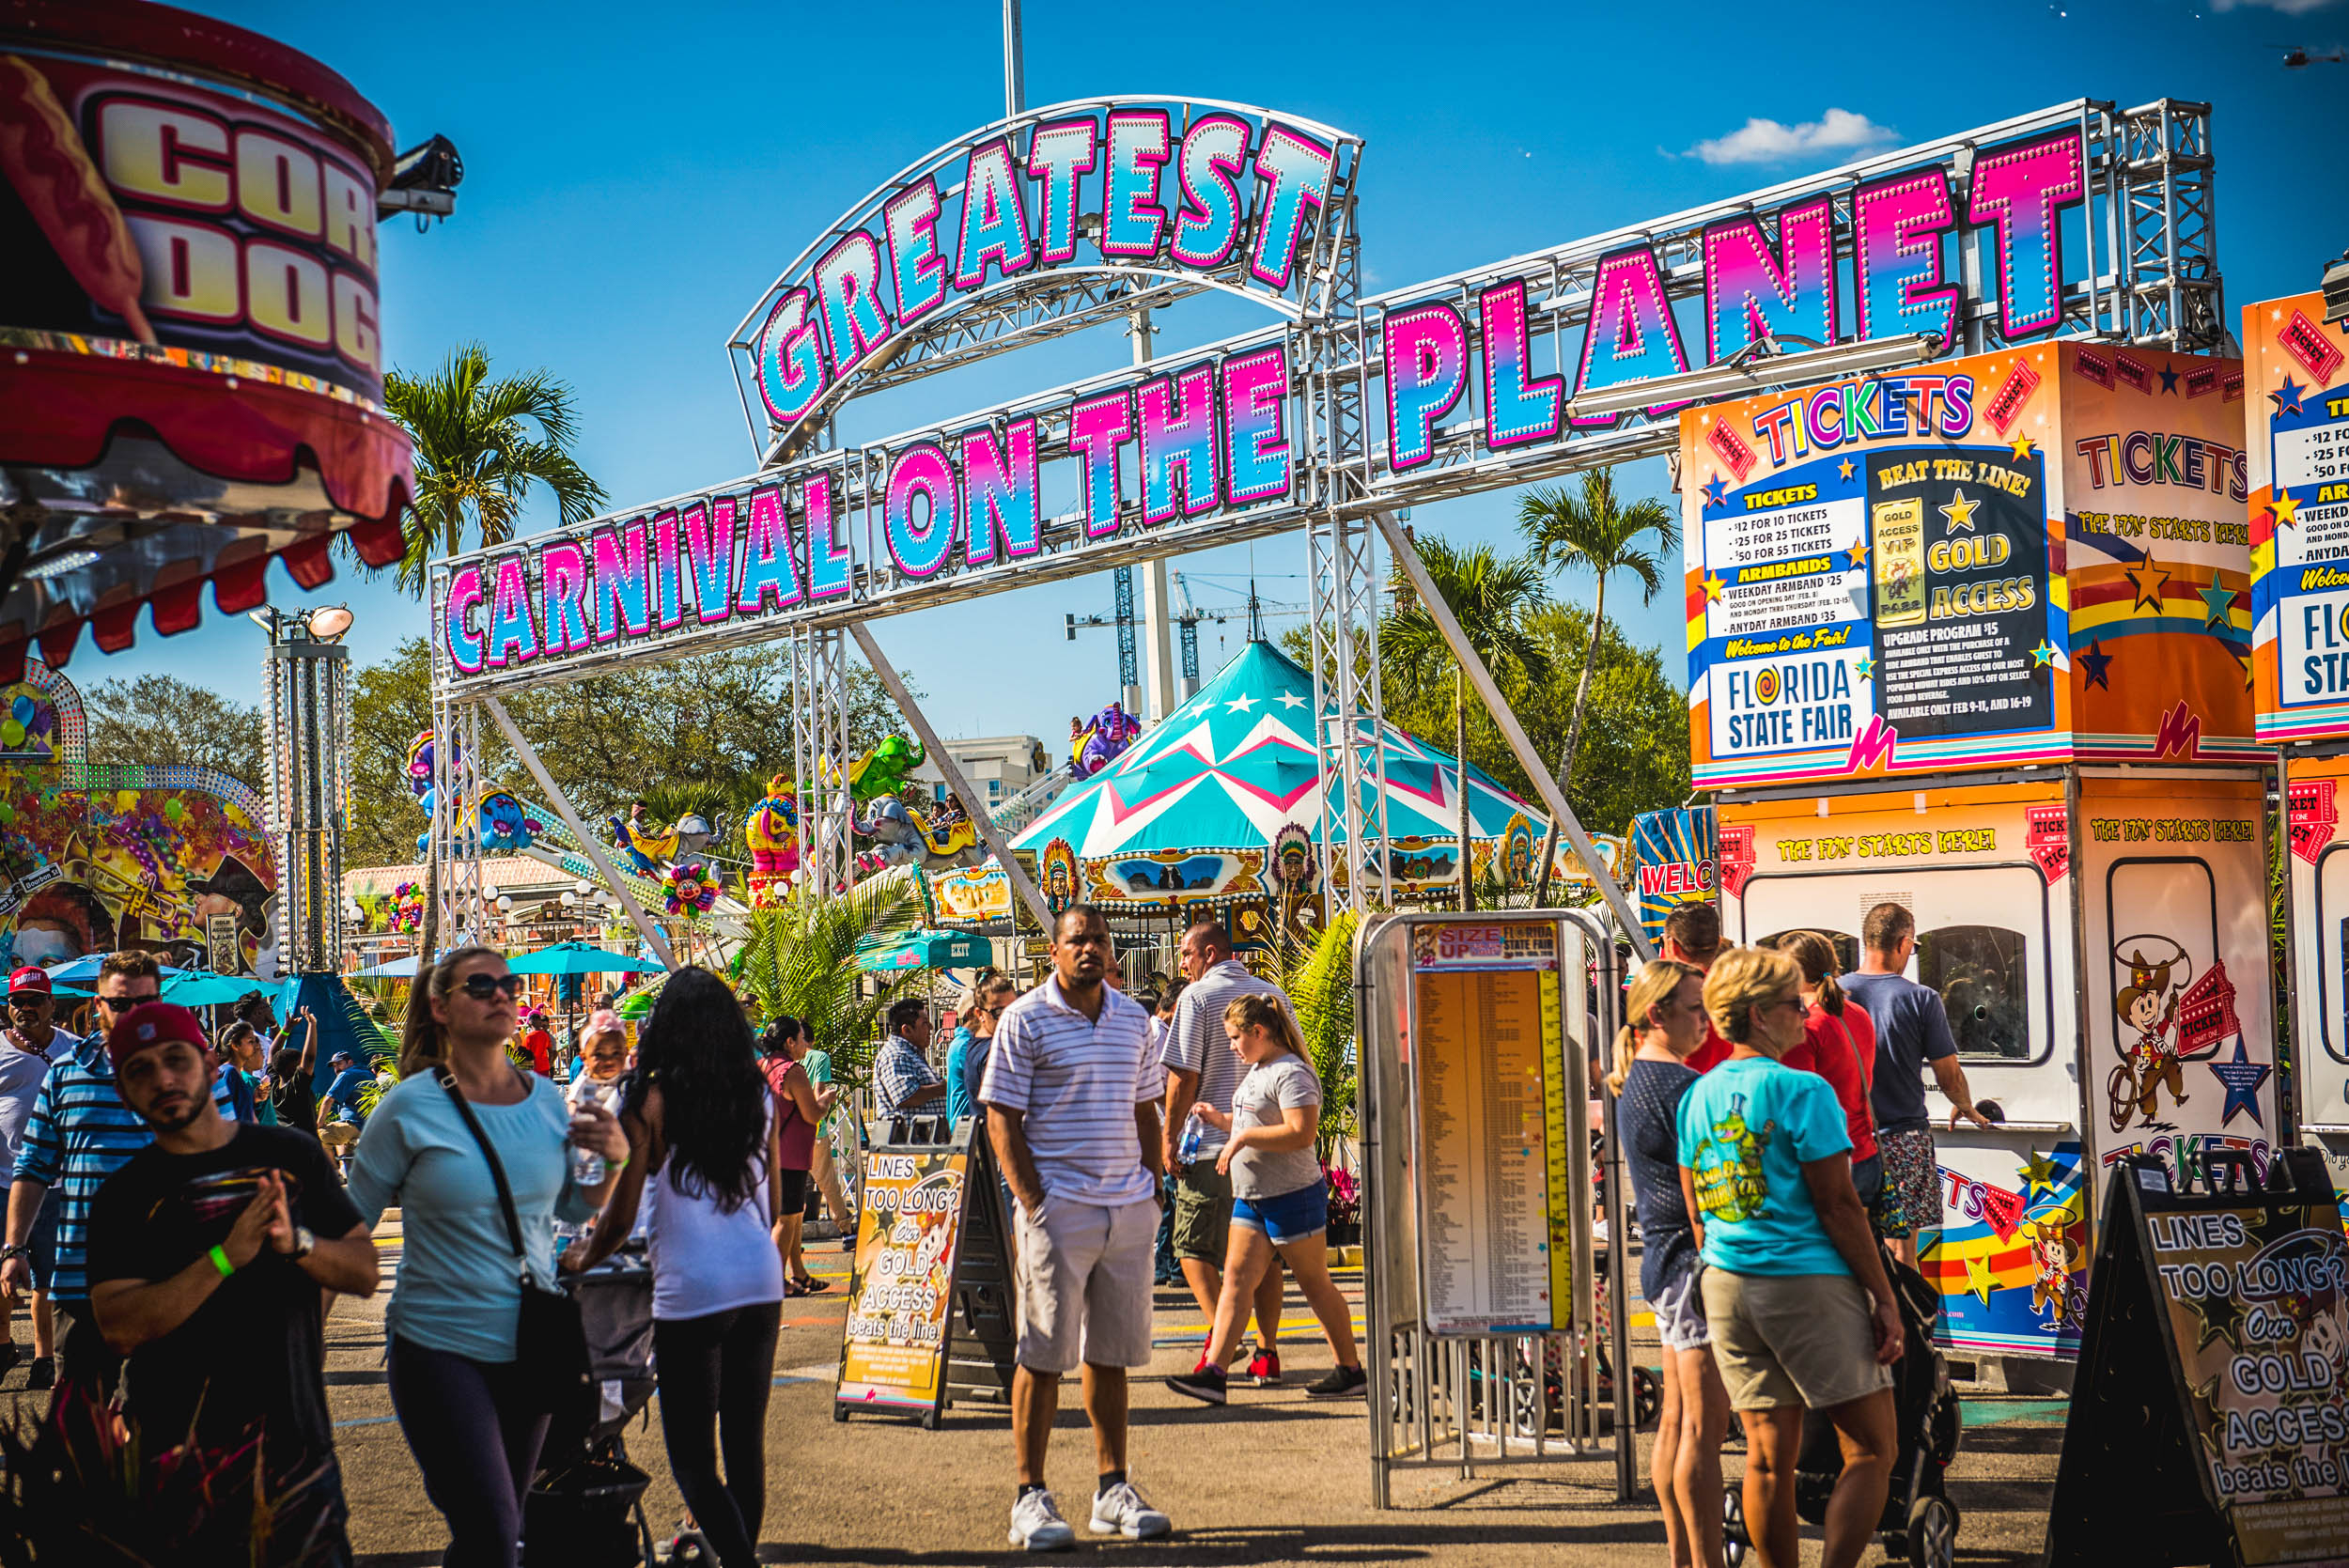 Vendors – Florida State Fair In Florida State Fairgrounds Events 2021